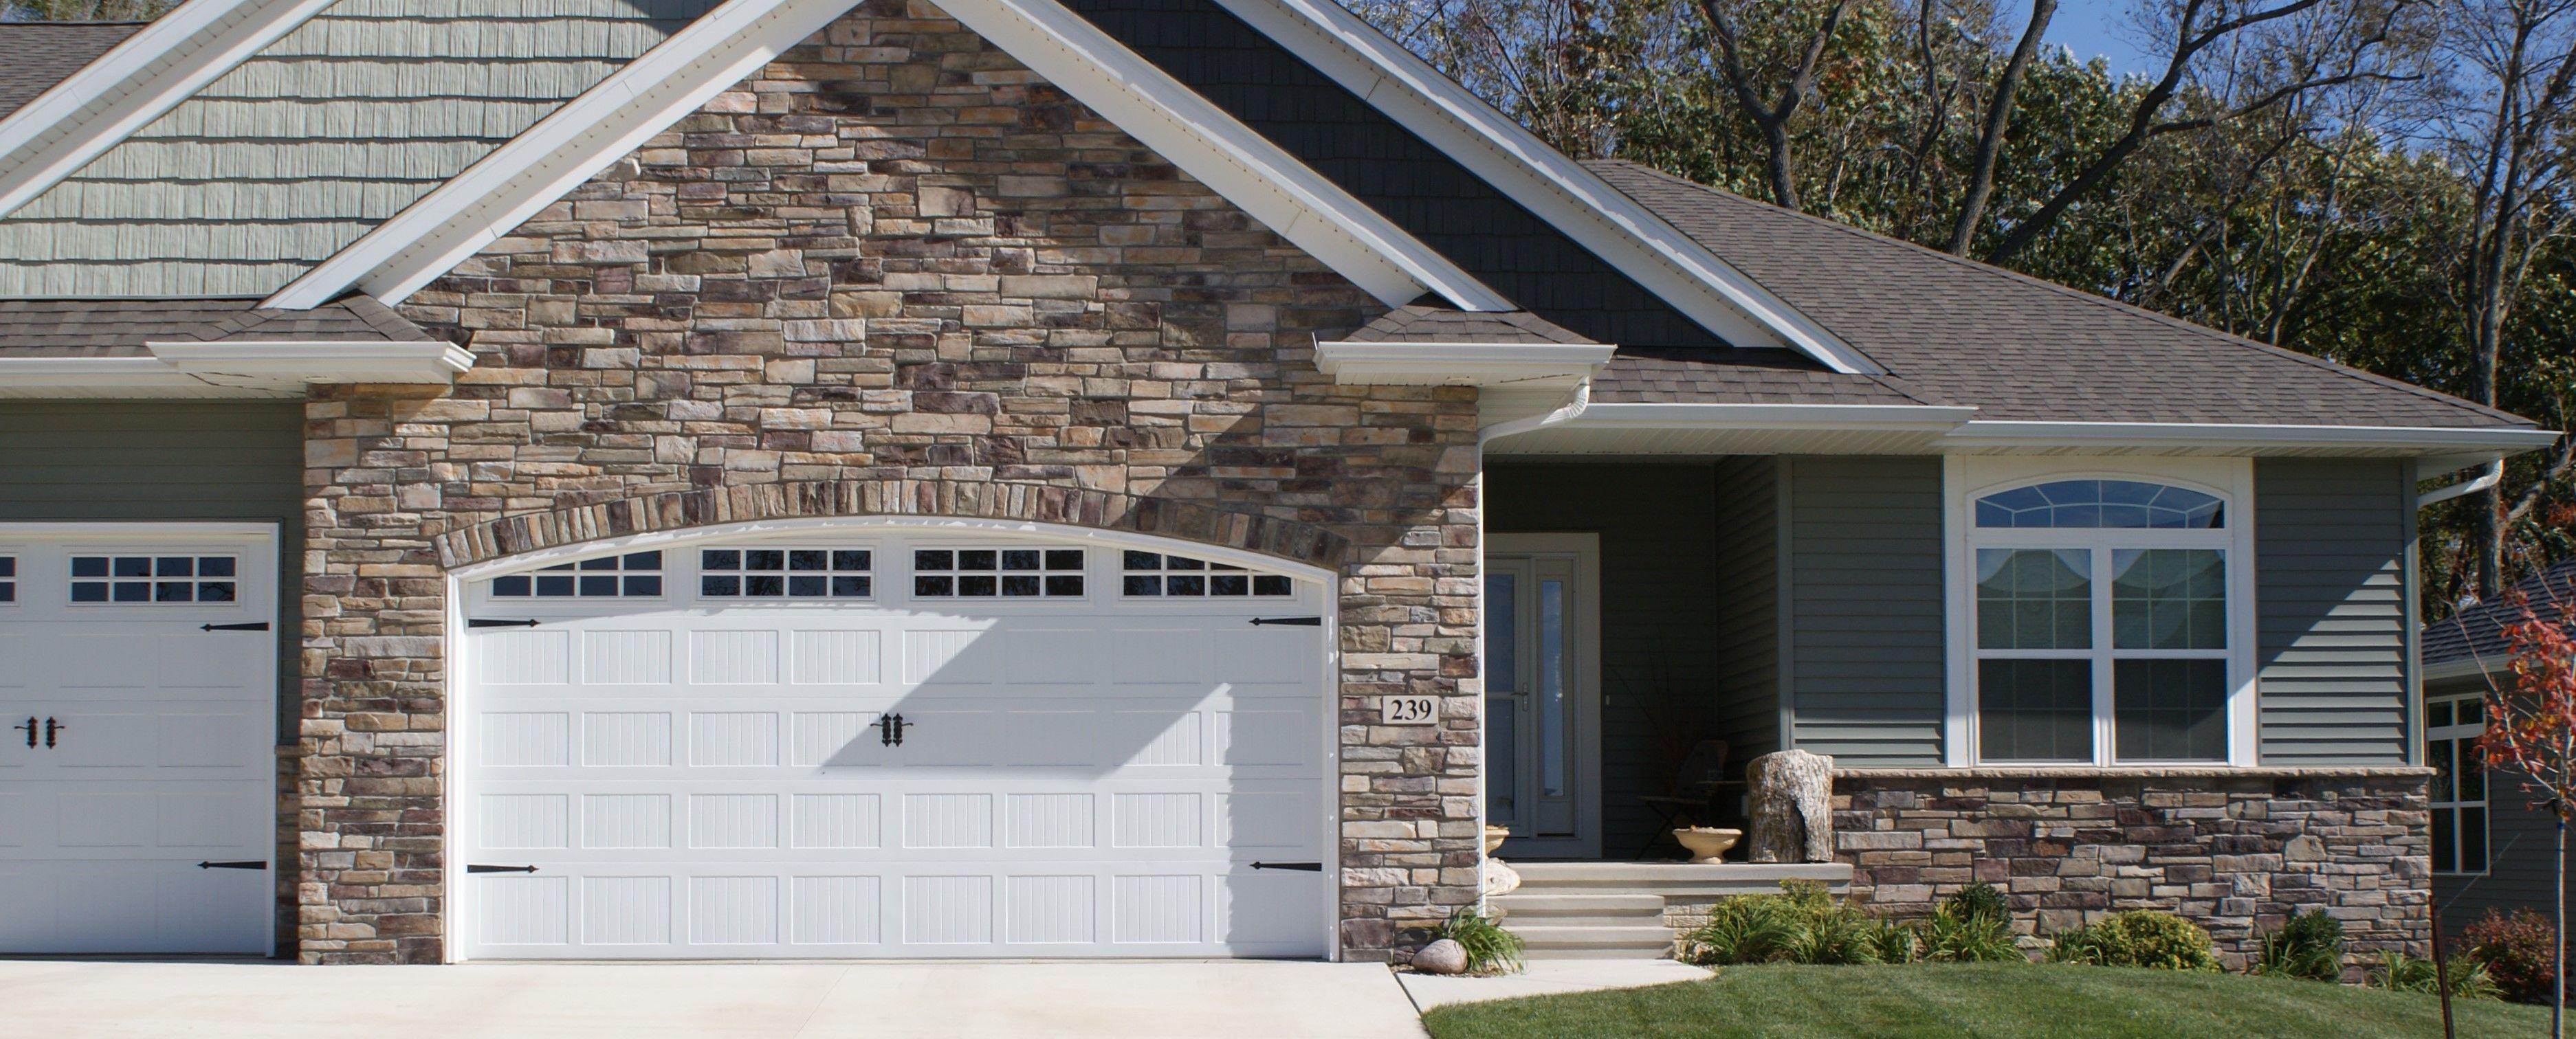 Boral bucks county country ledgestone country ledgestone boral bucks county country ledgestone rubansaba